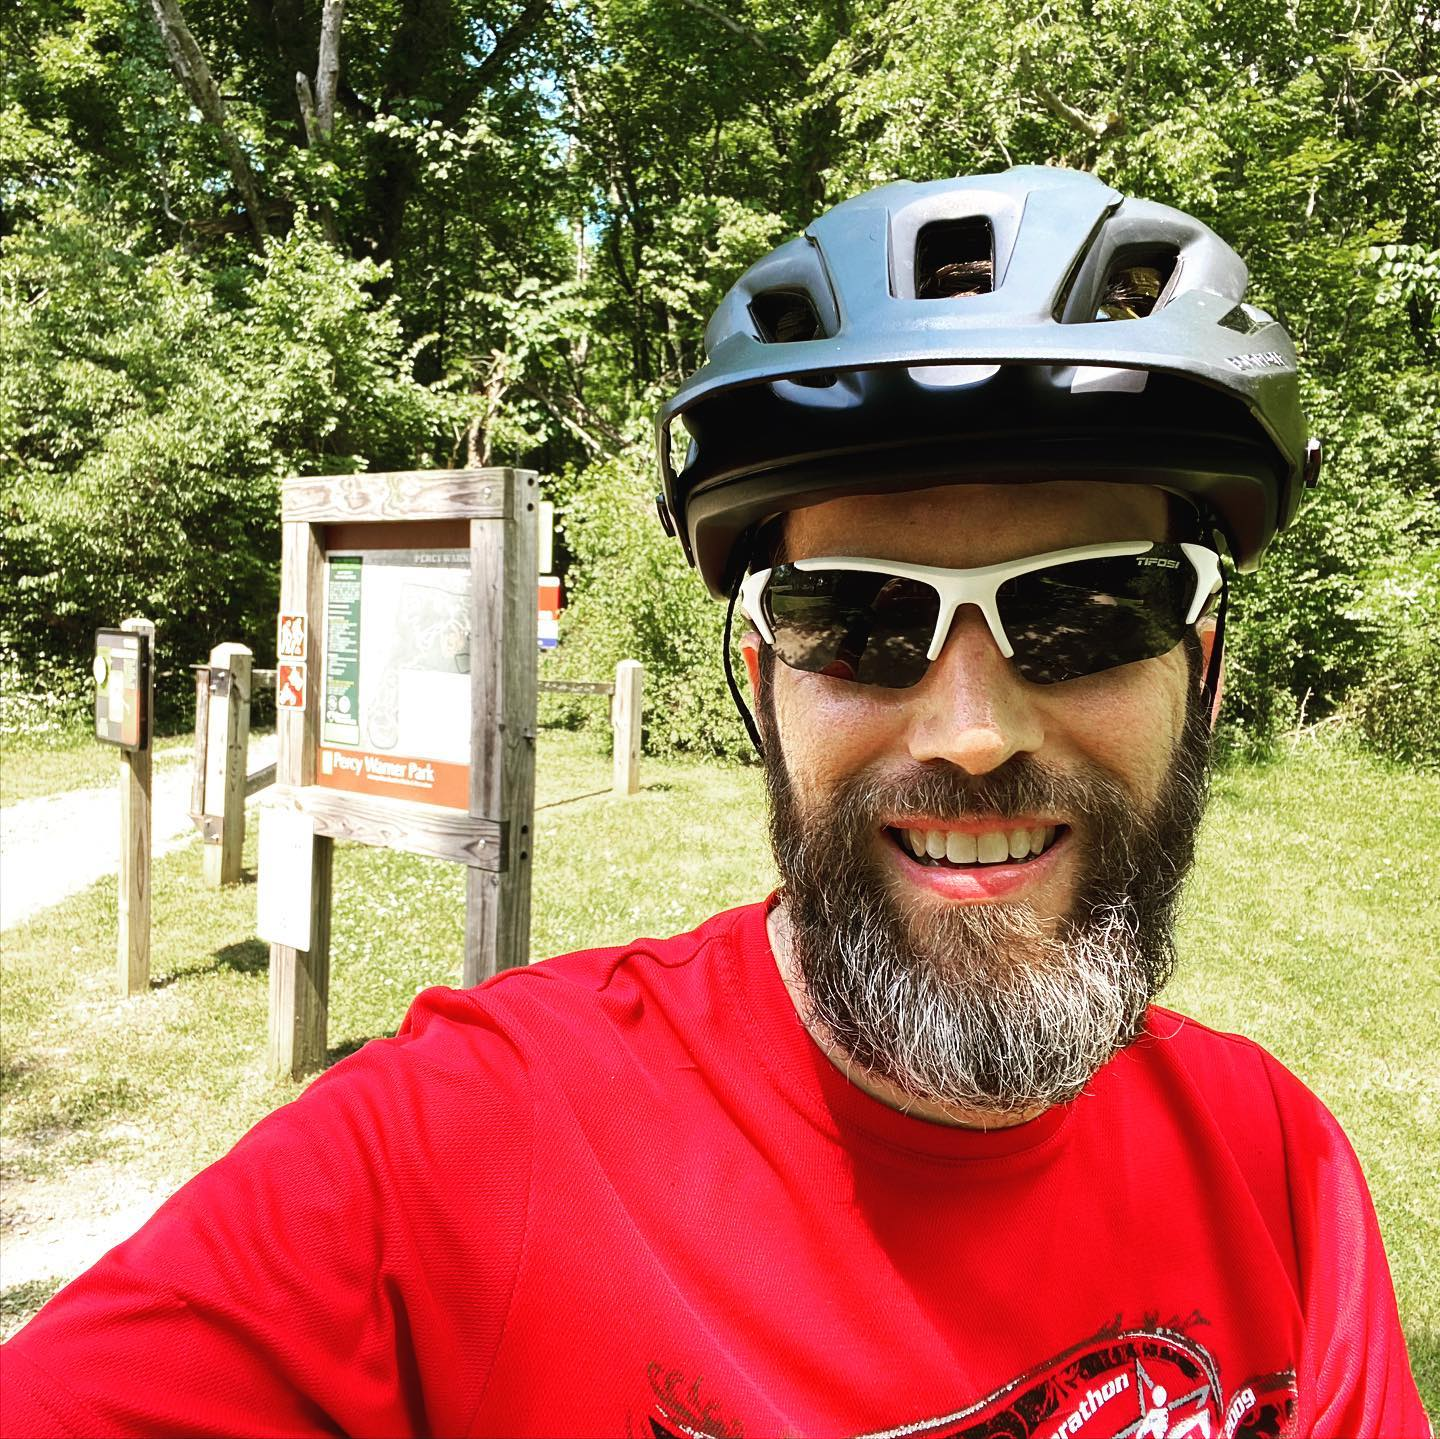 First time on the mountain biking trails since my hand surgery. I survived, but the trails humbled me. #mountainbike #biking